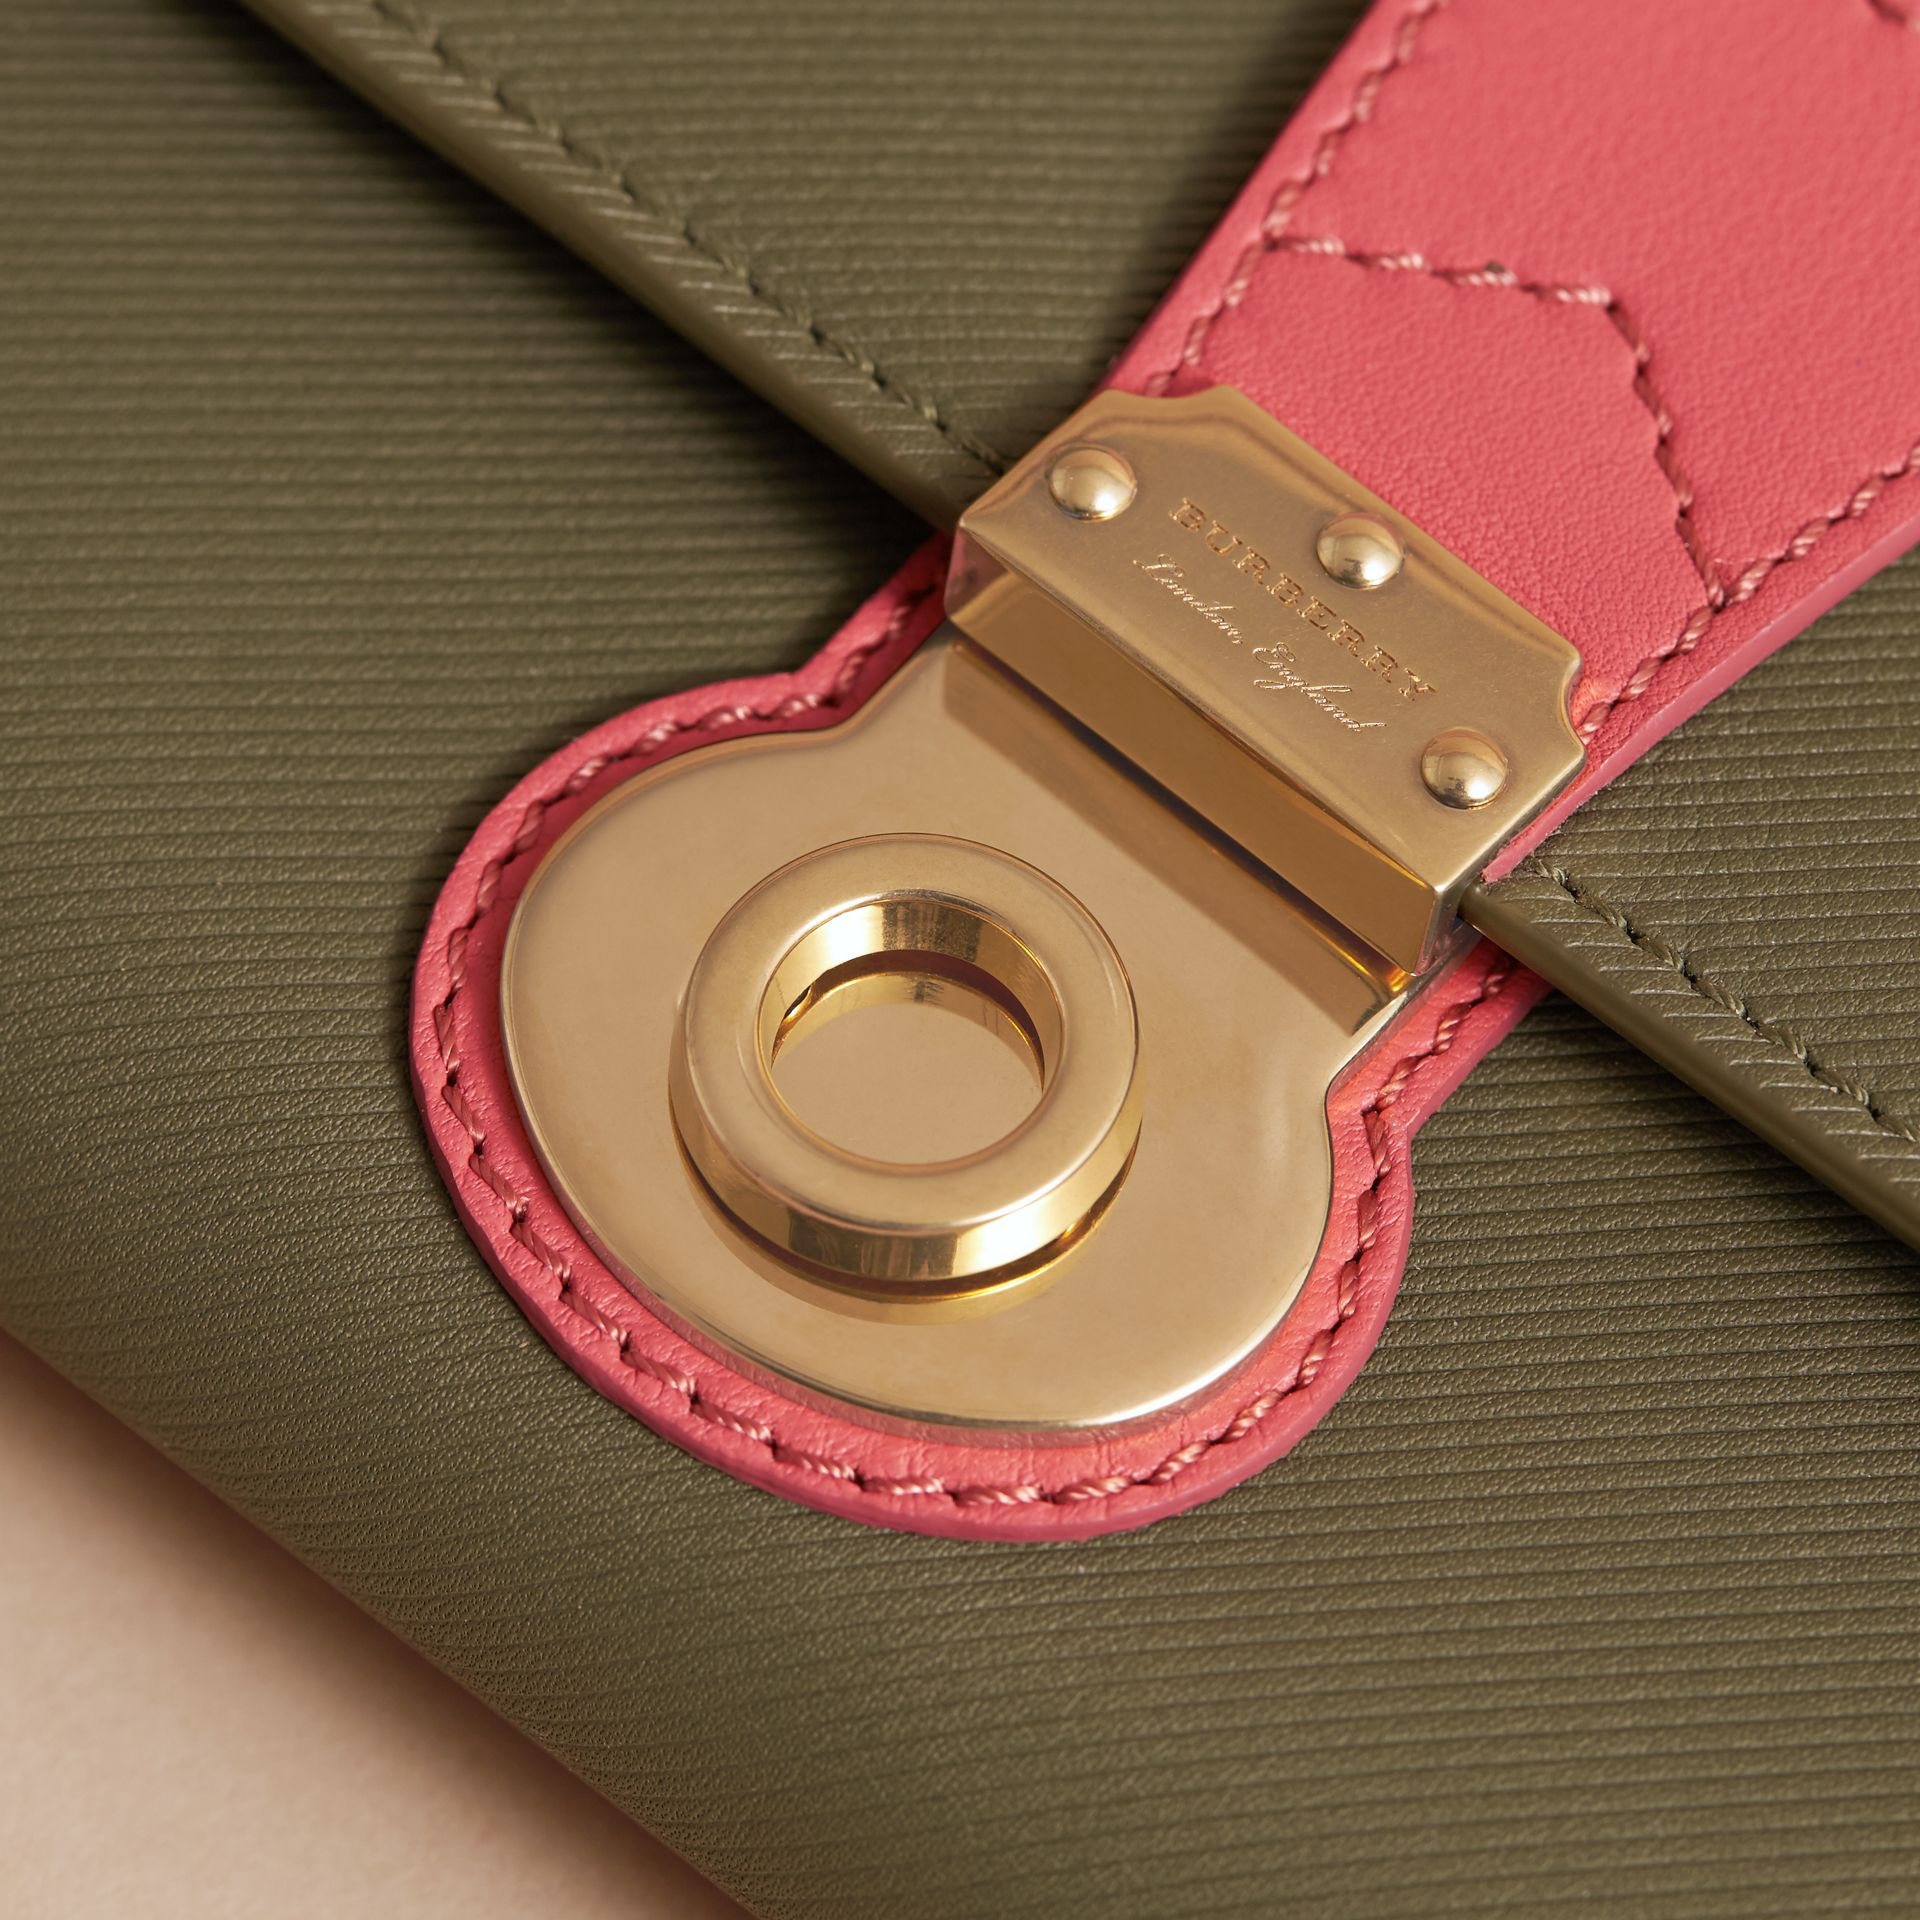 Portefeuille continental en cuir trench bicolore (Vert Mousse/rose Blossom) - Femme | Burberry - photo de la galerie 2